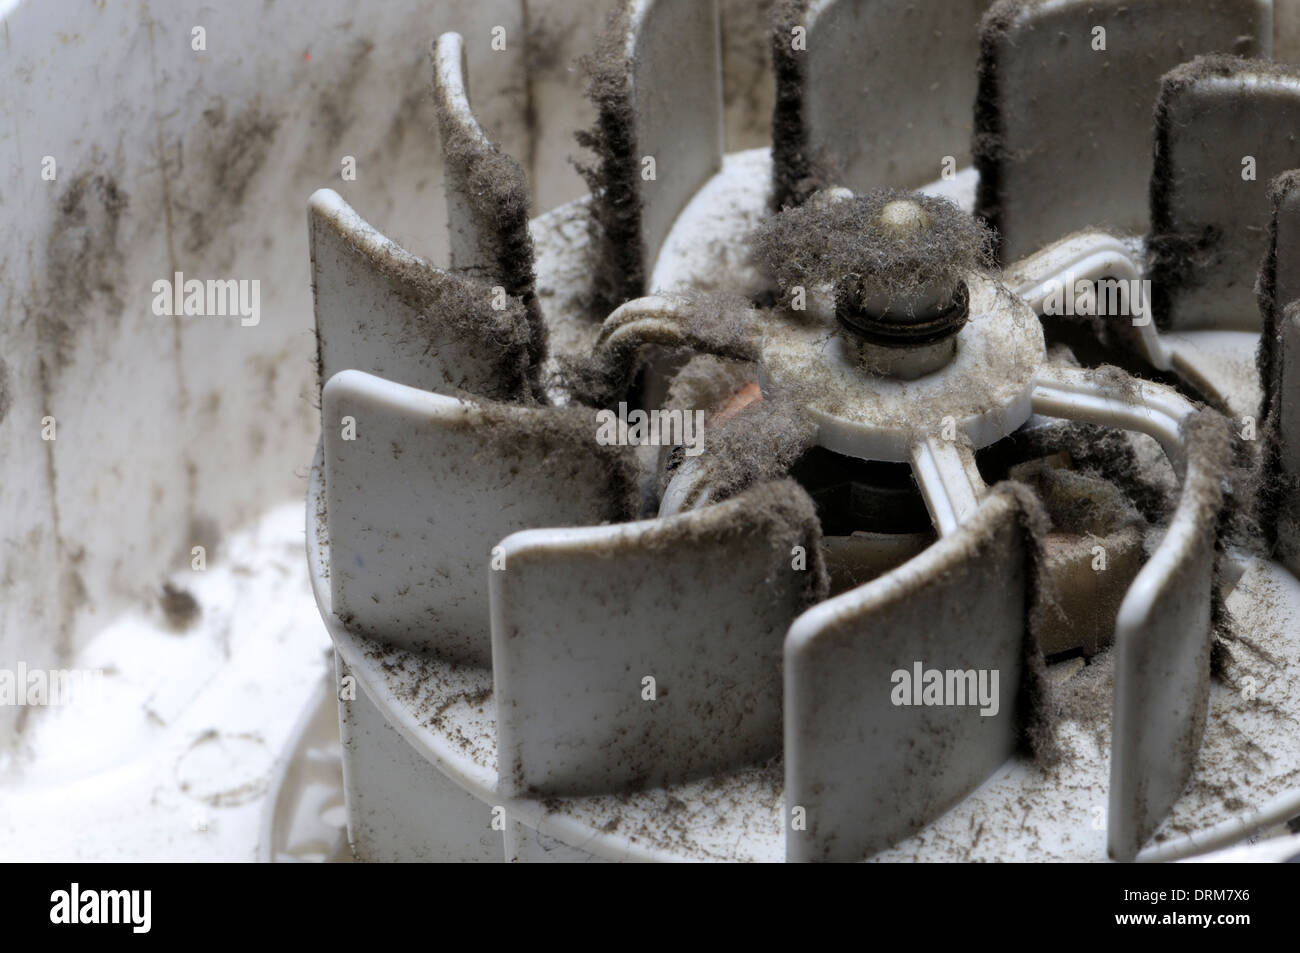 Interior of an old electric fan heater - very dusty - Stock Image